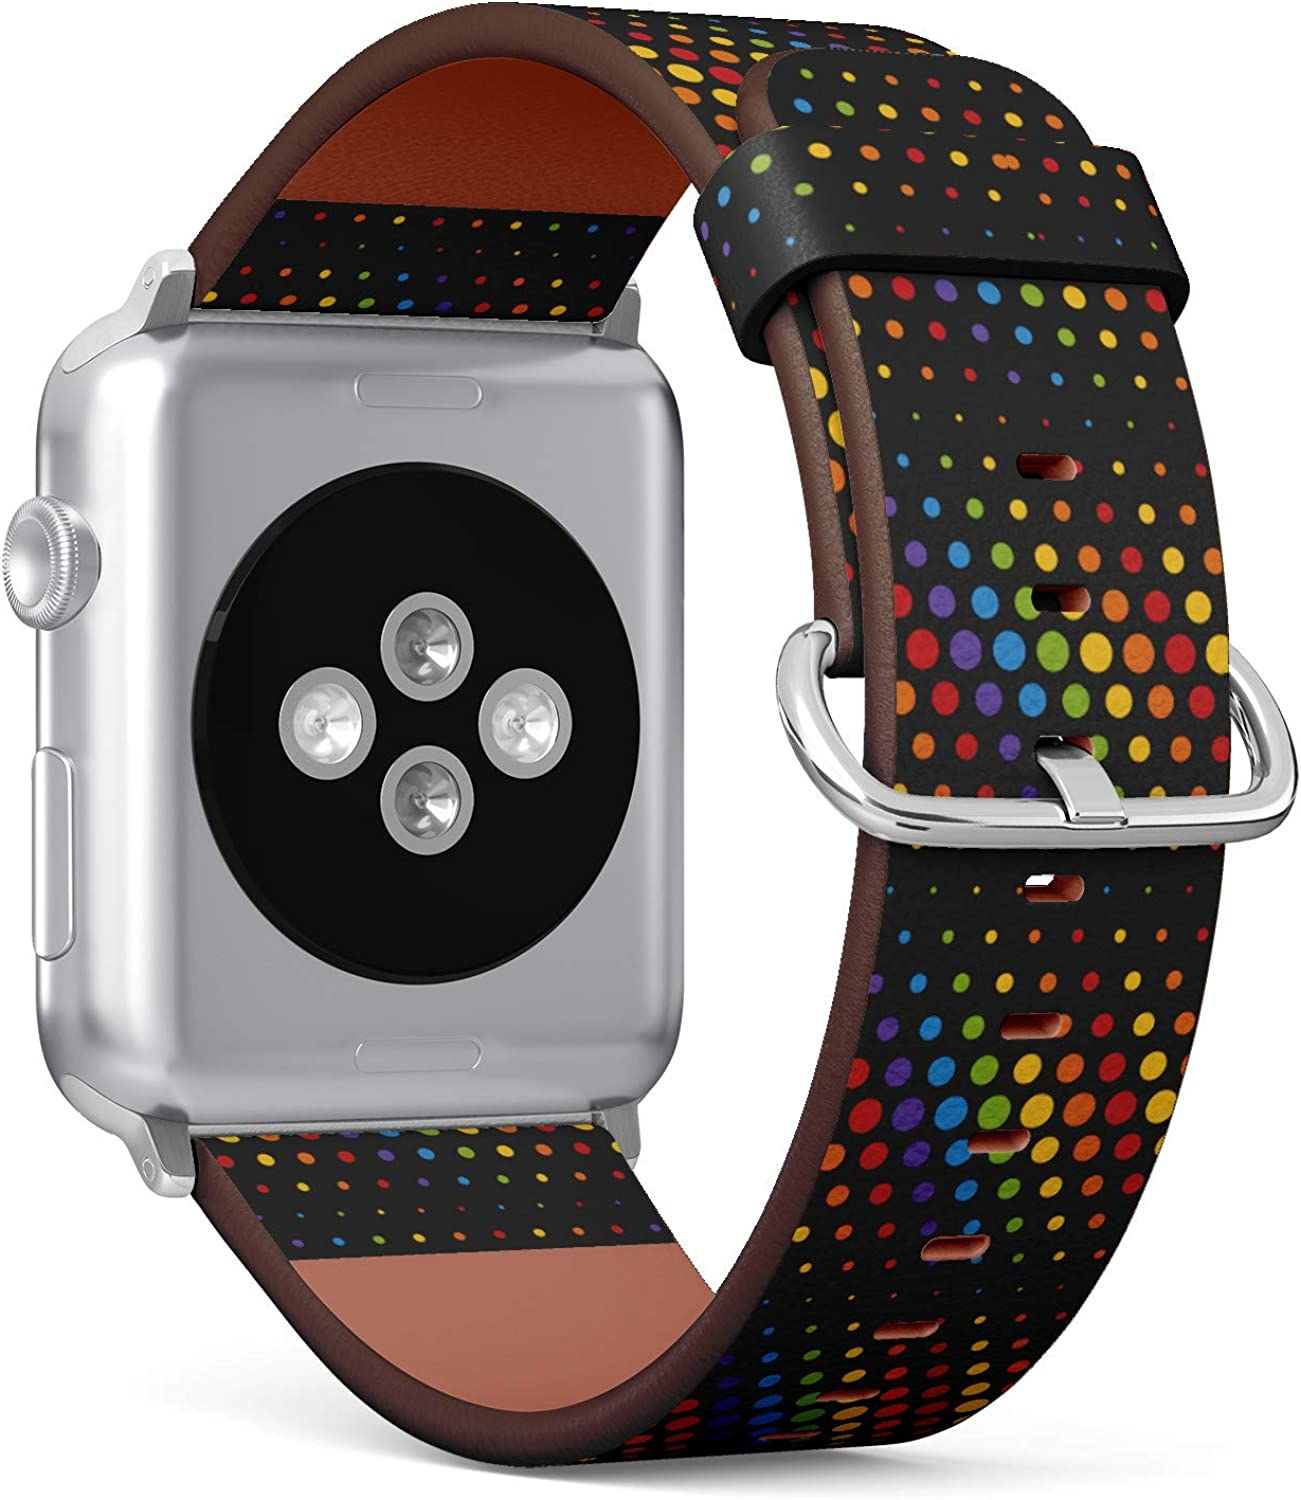 LGBT Pride Rainbow Polka Dots - Patterned Leather Wristband Strap Compatible with Apple Watch Series 4/3/2/1 42mm/44mm